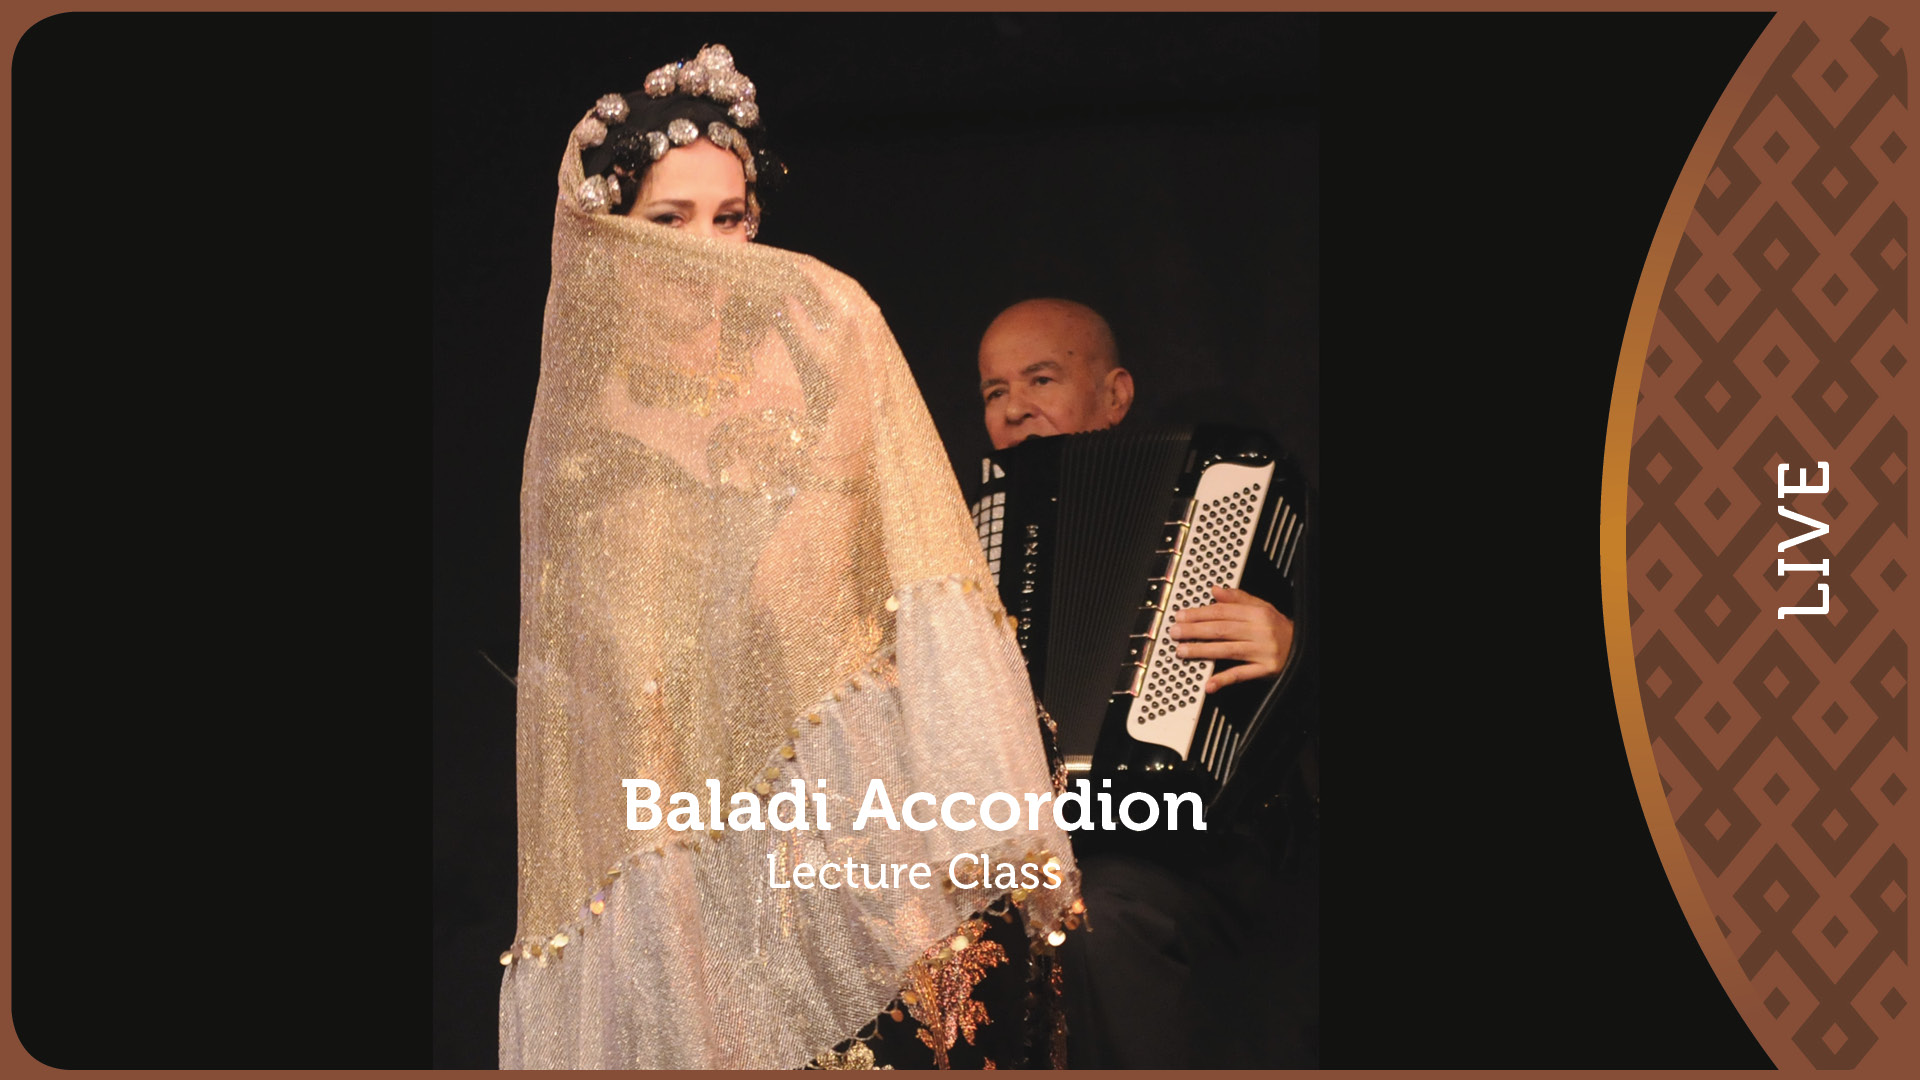 Baladi Accordion Lecture Class Part 1/2